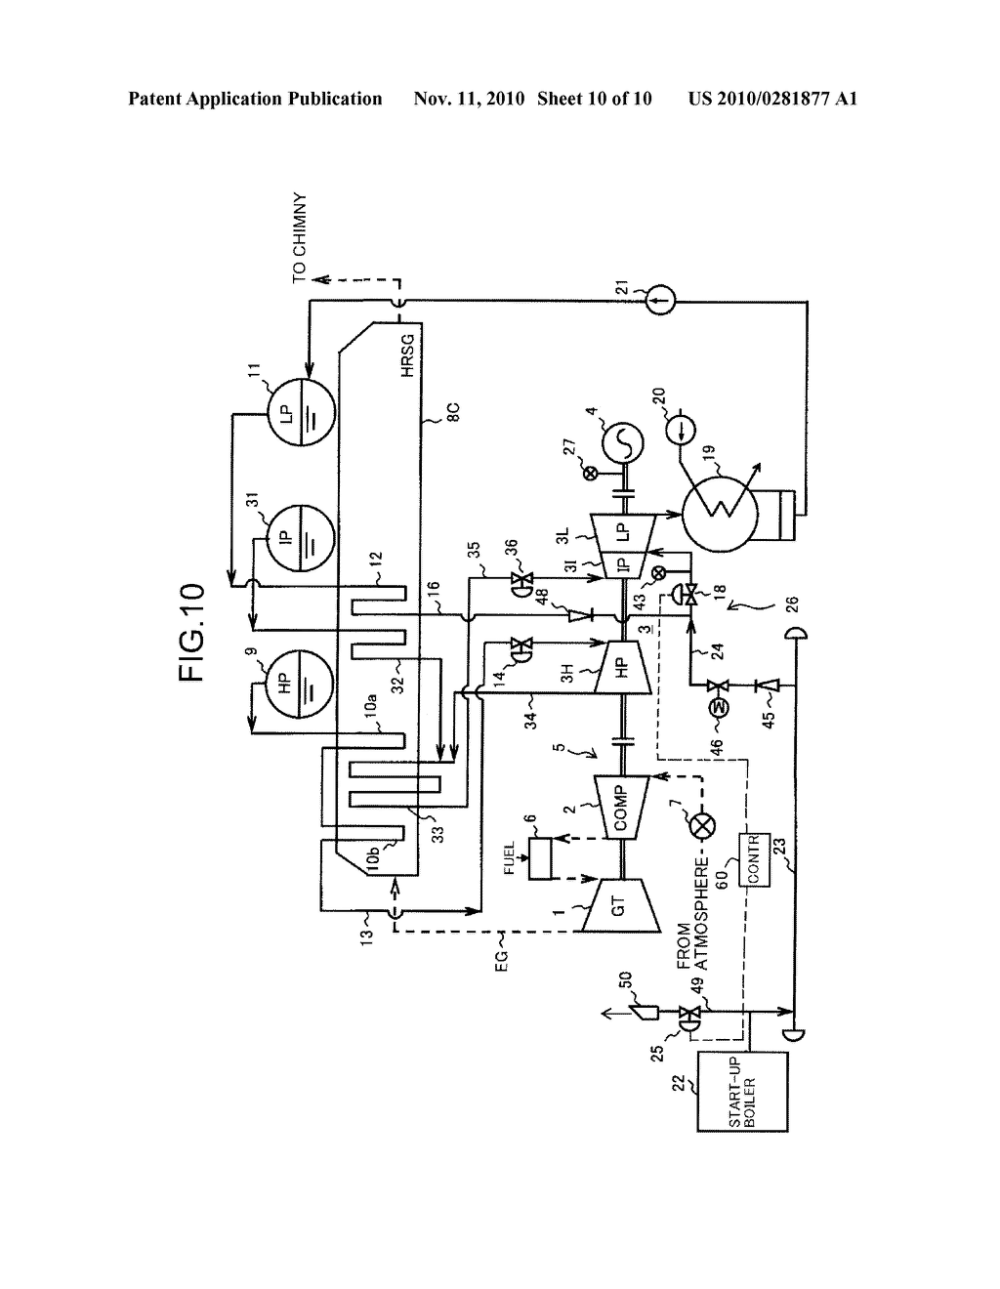 medium resolution of single shaft combined cycle power plant start up method an single shaft combined cycle power plant diagram schematic and image 11